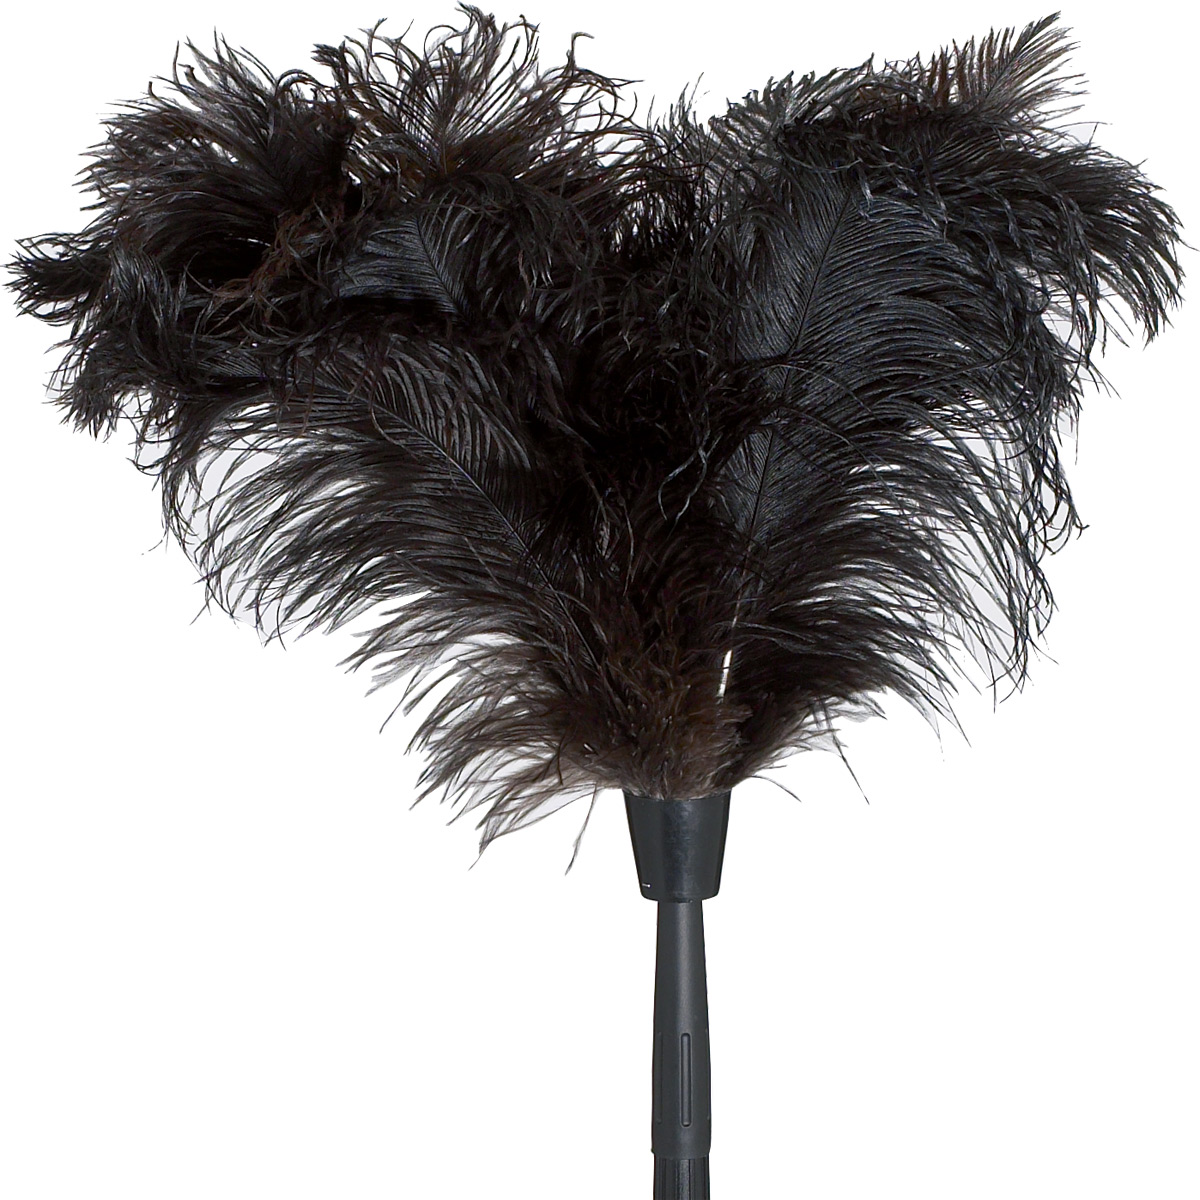 More Photos - Ostrich Feather PNG